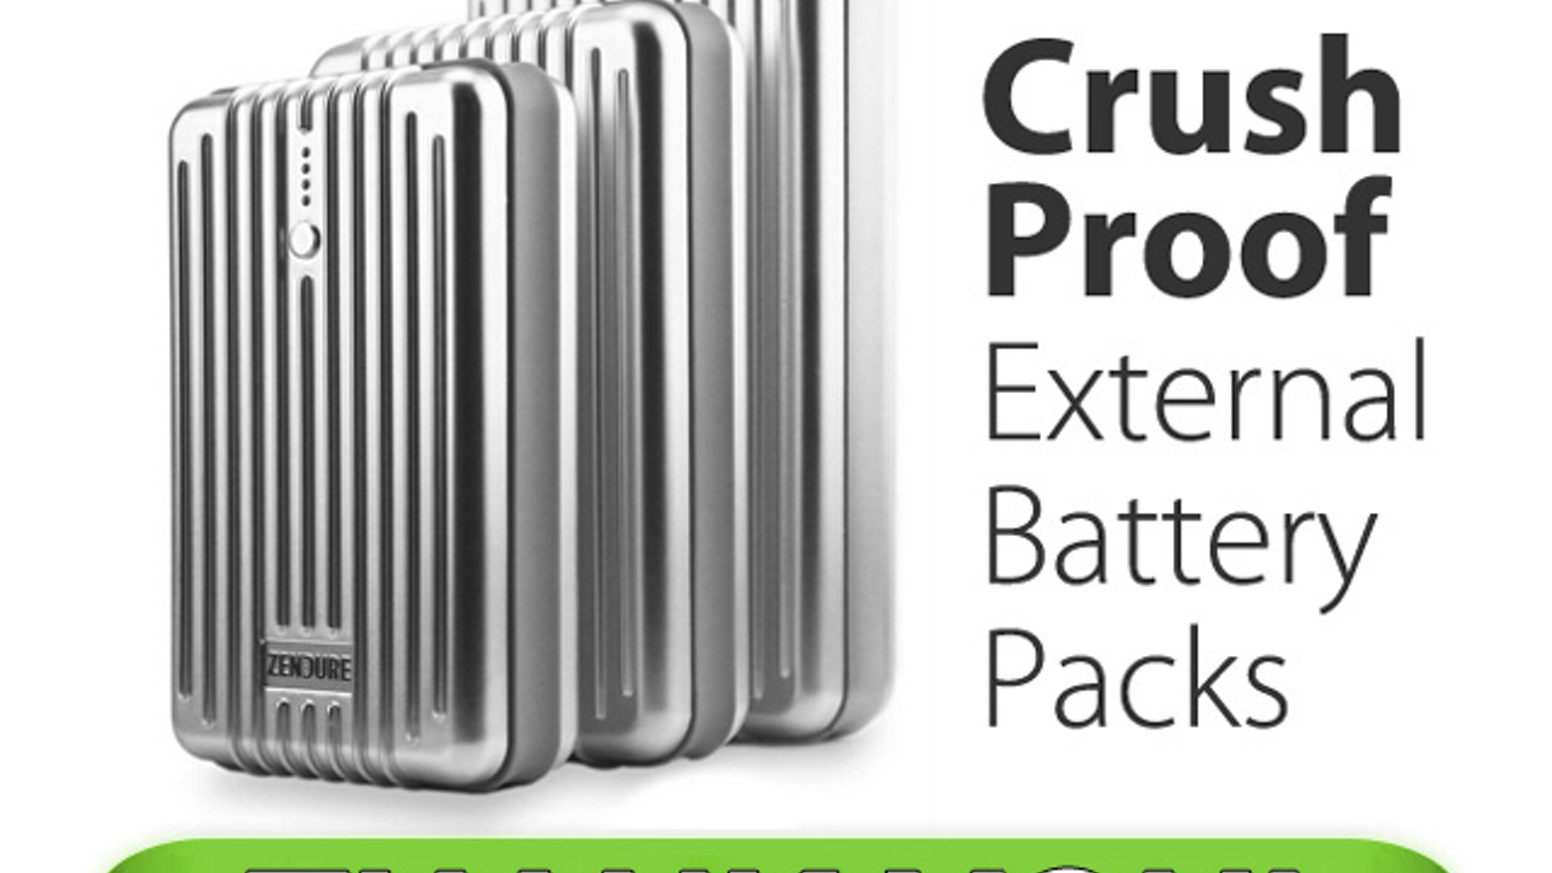 Zendure Crush Proof External Batteries For Everyday Life By Build Mobile Phone And Ipod Battery Charger Circuit Diagram Kickstarter